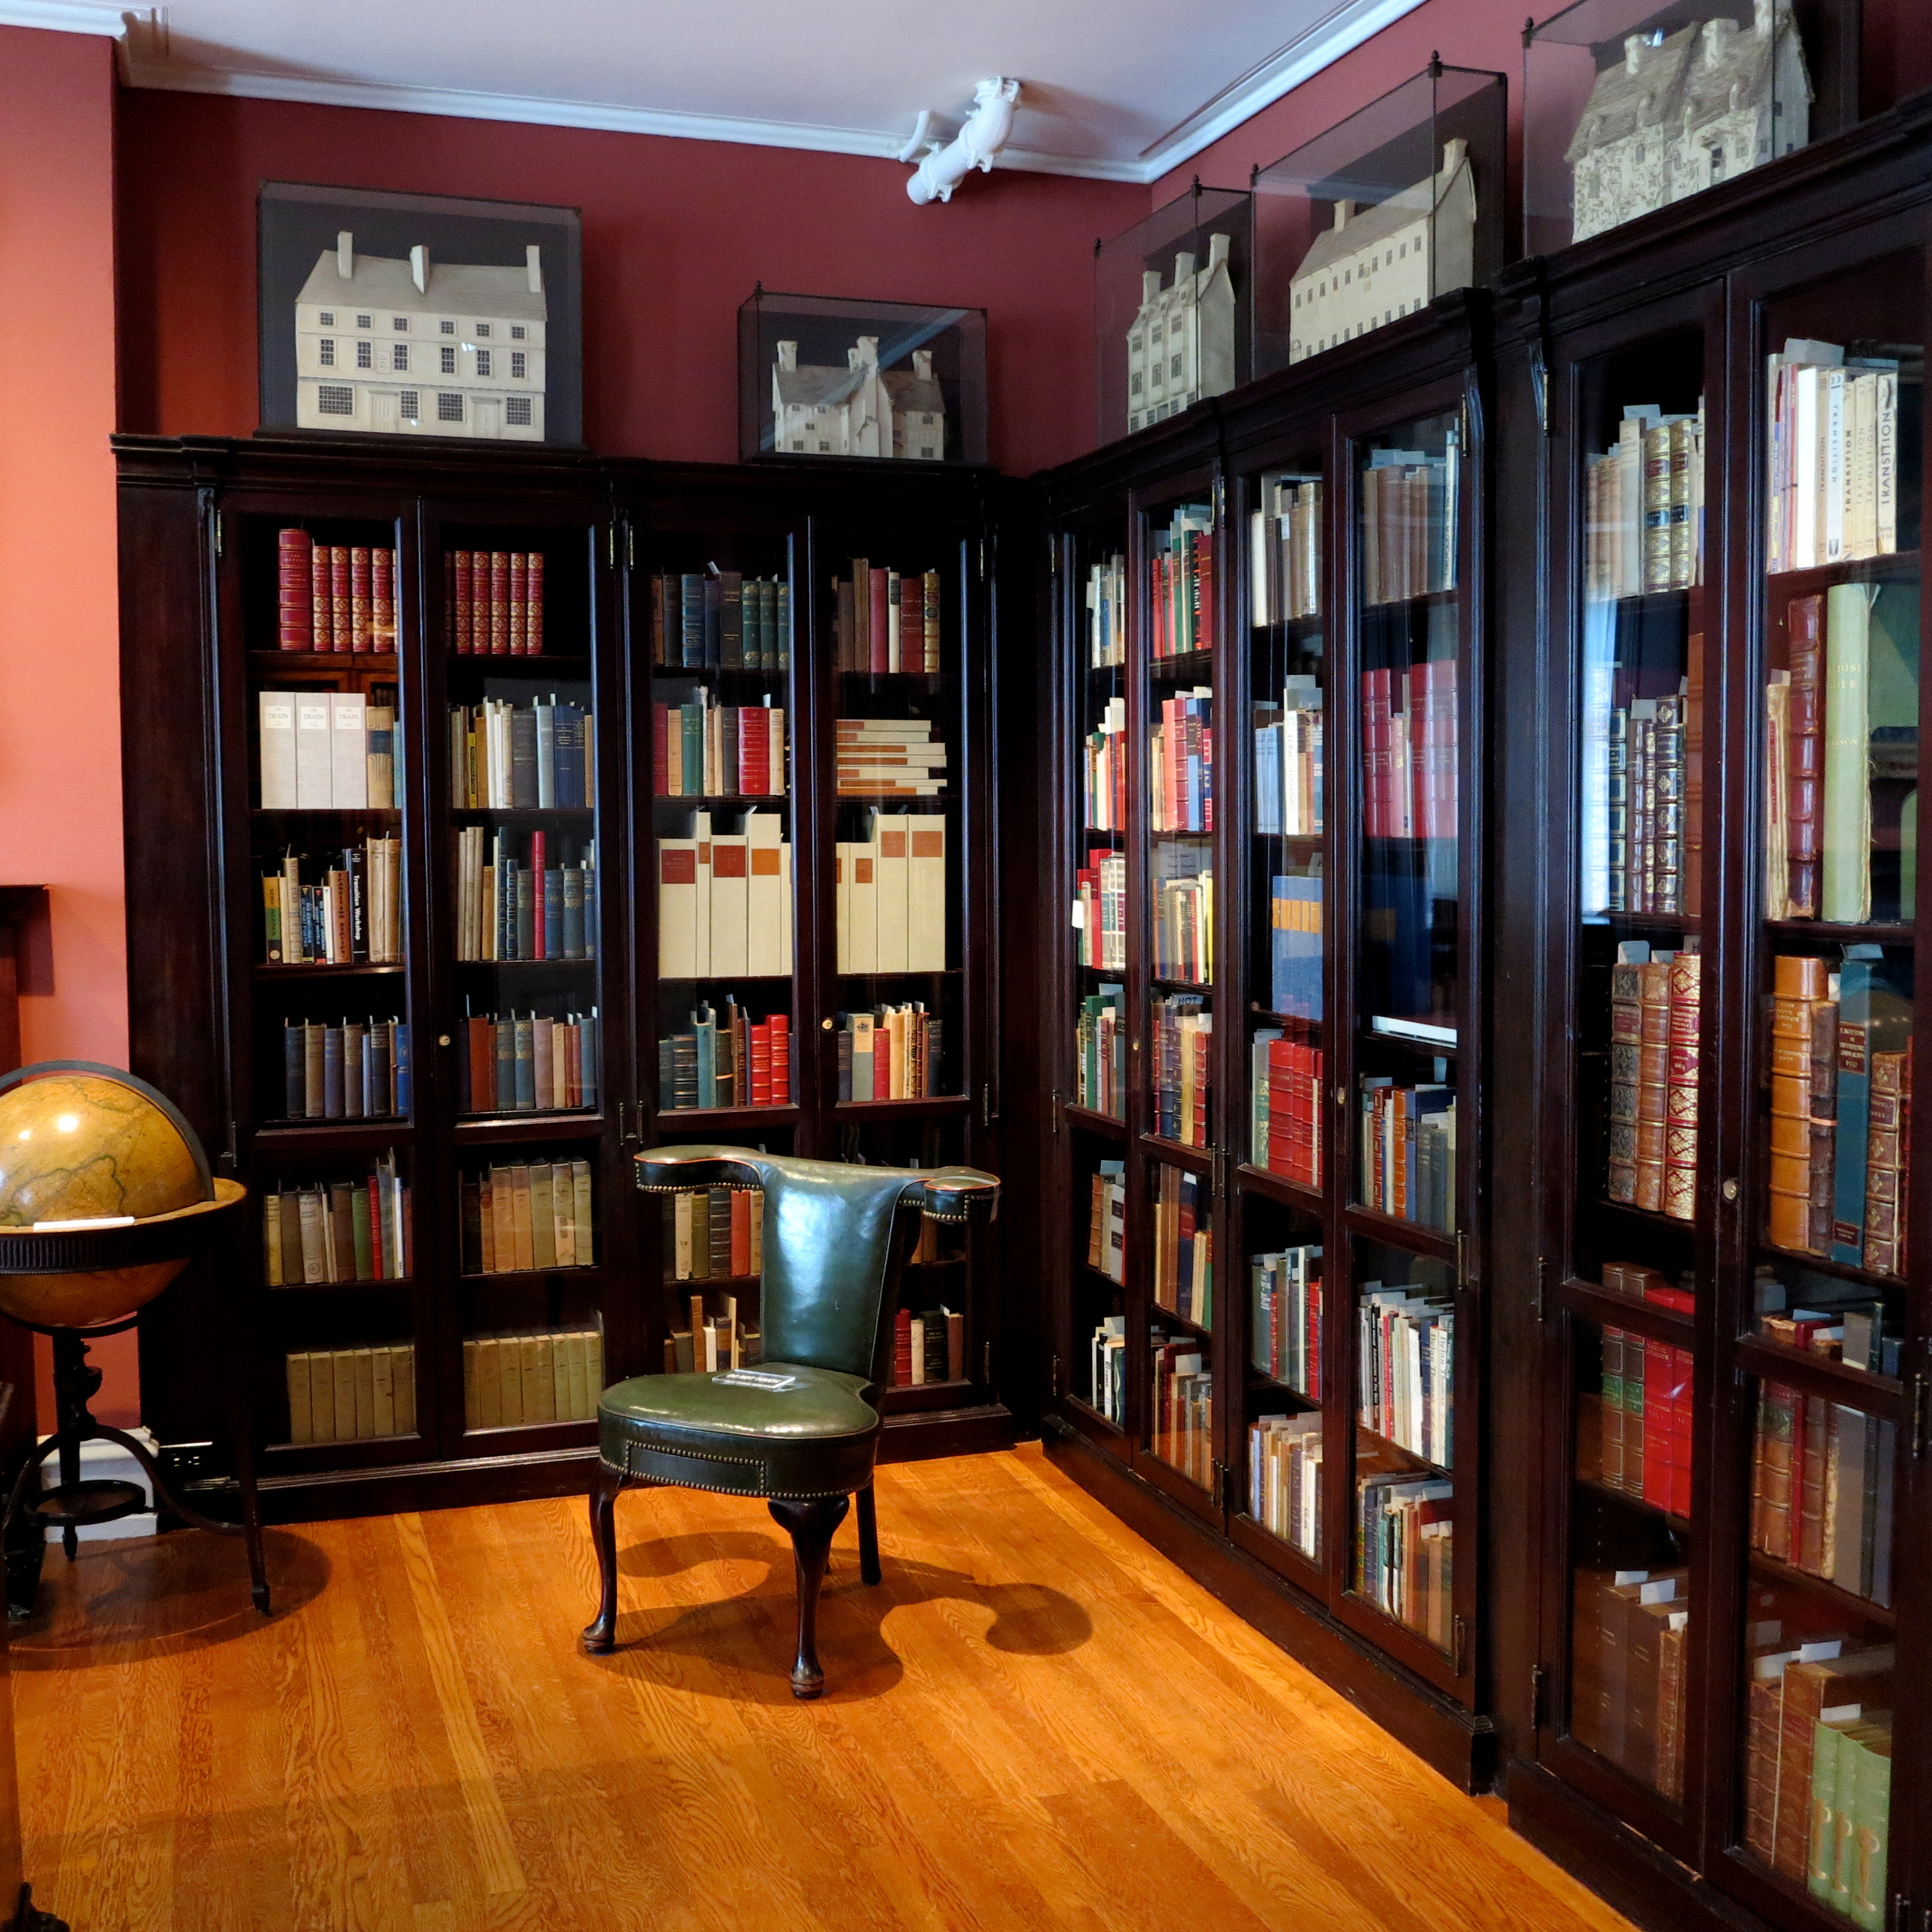 Cases in the Rosenbach Library